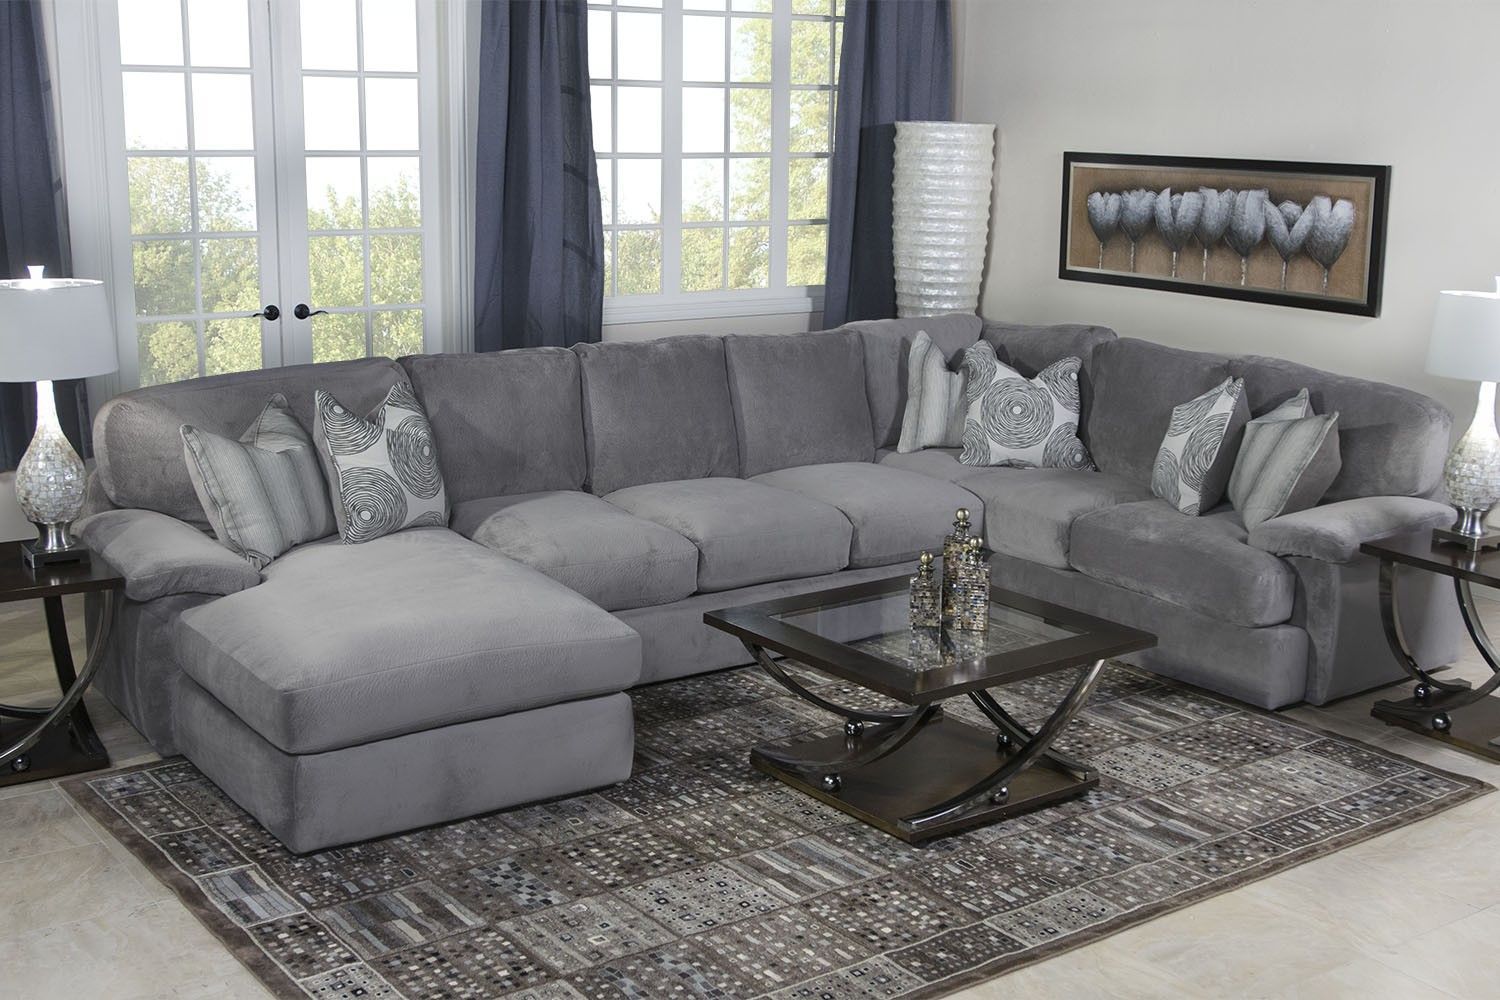 Key west sectional living room in gray living room mor for Living room suites furniture